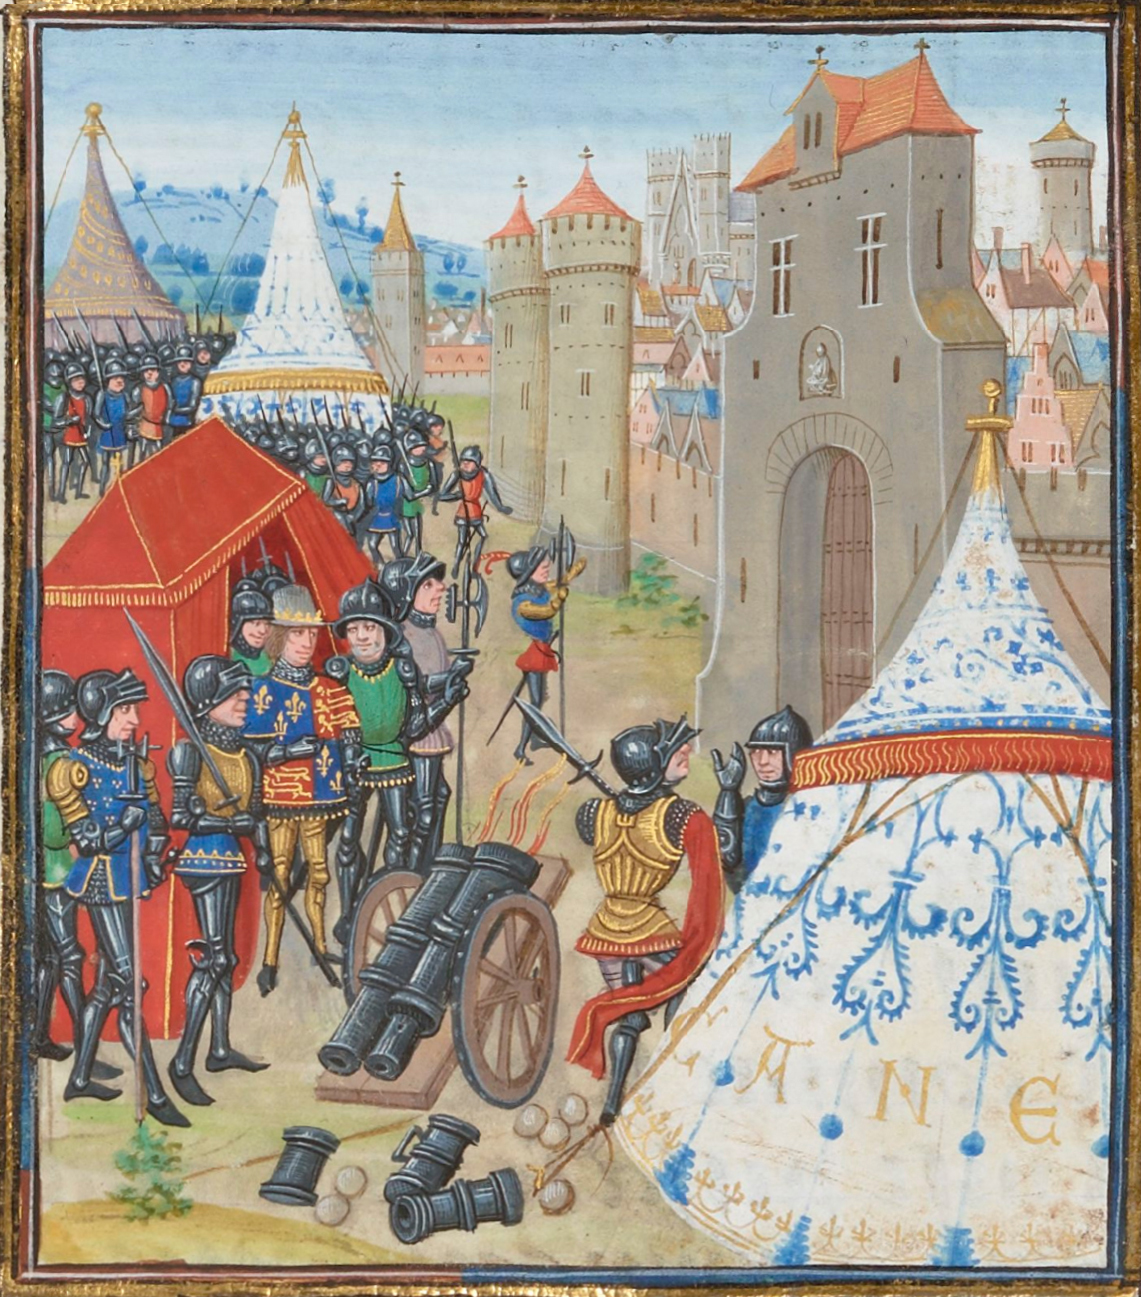 Edward III of England besieges Reims in the Reims Campaign of the Hundred Years' War. The cathedral is visible in the background.